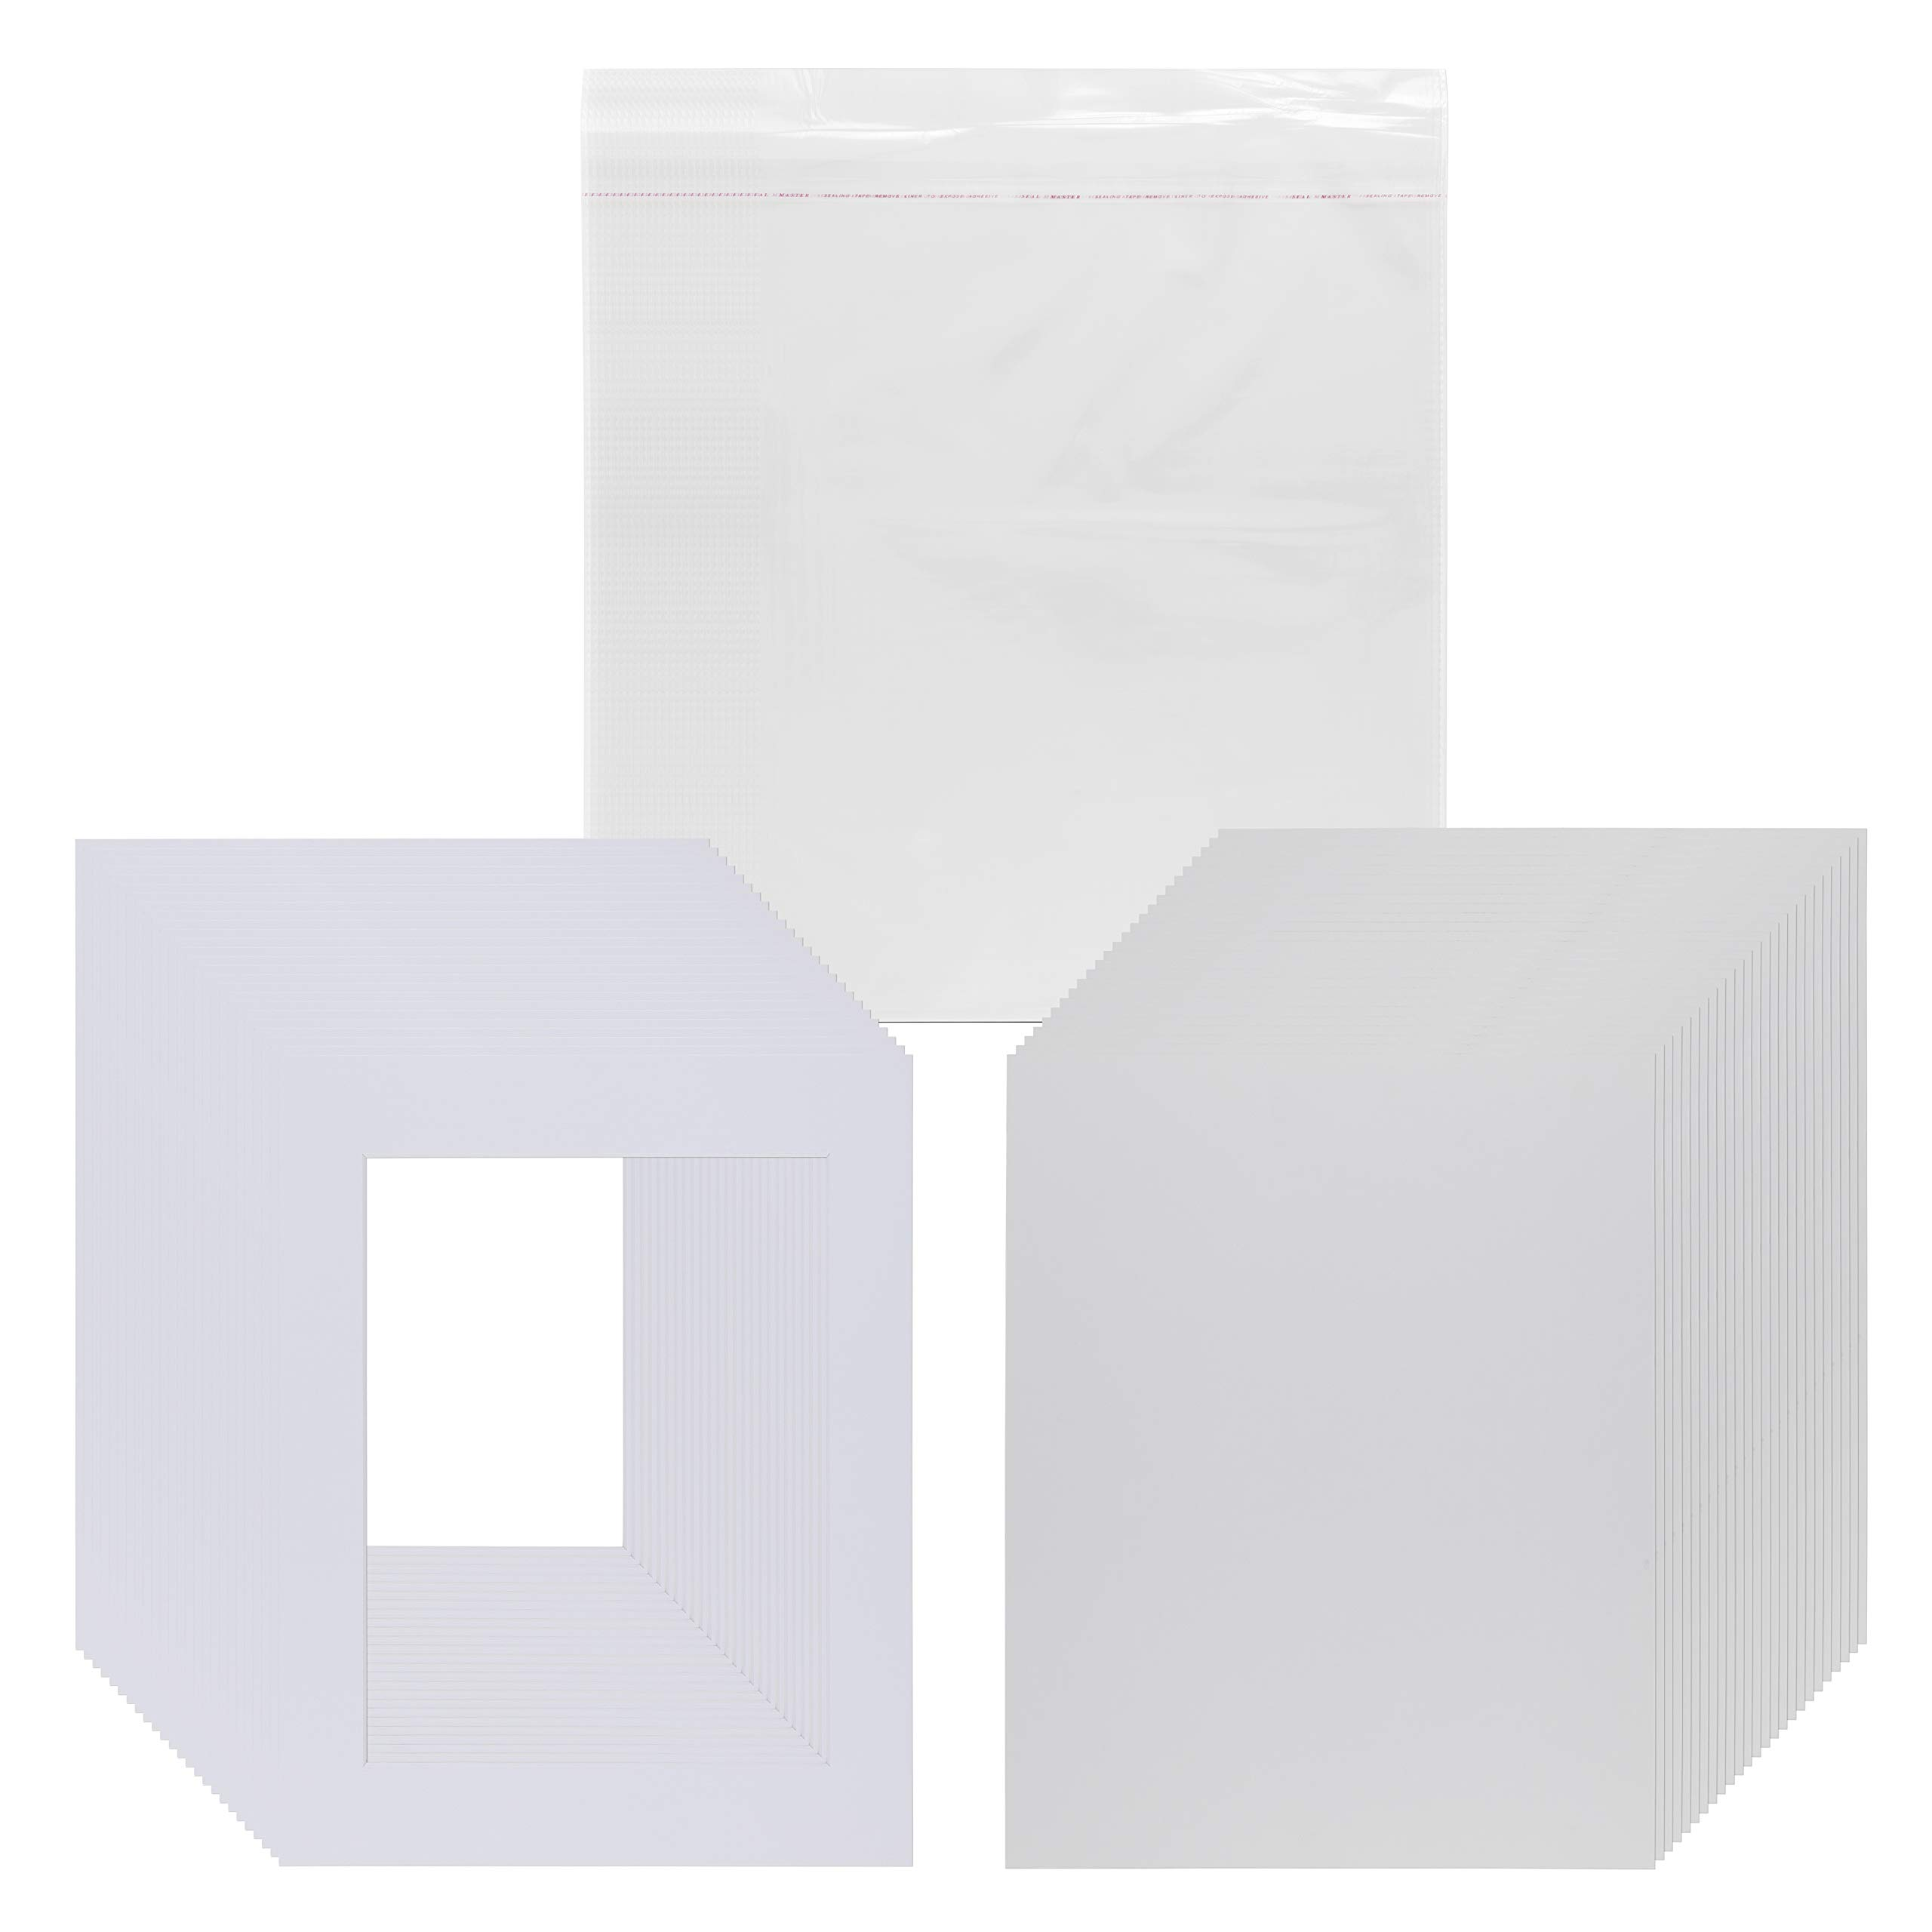 Pack of 25 11x14 Picture Mats Pre Cut for 8.5x11 Photos or Art, White Core Bevel, Set Includes Backing Board & Sealed Bags - White by Viewpoint